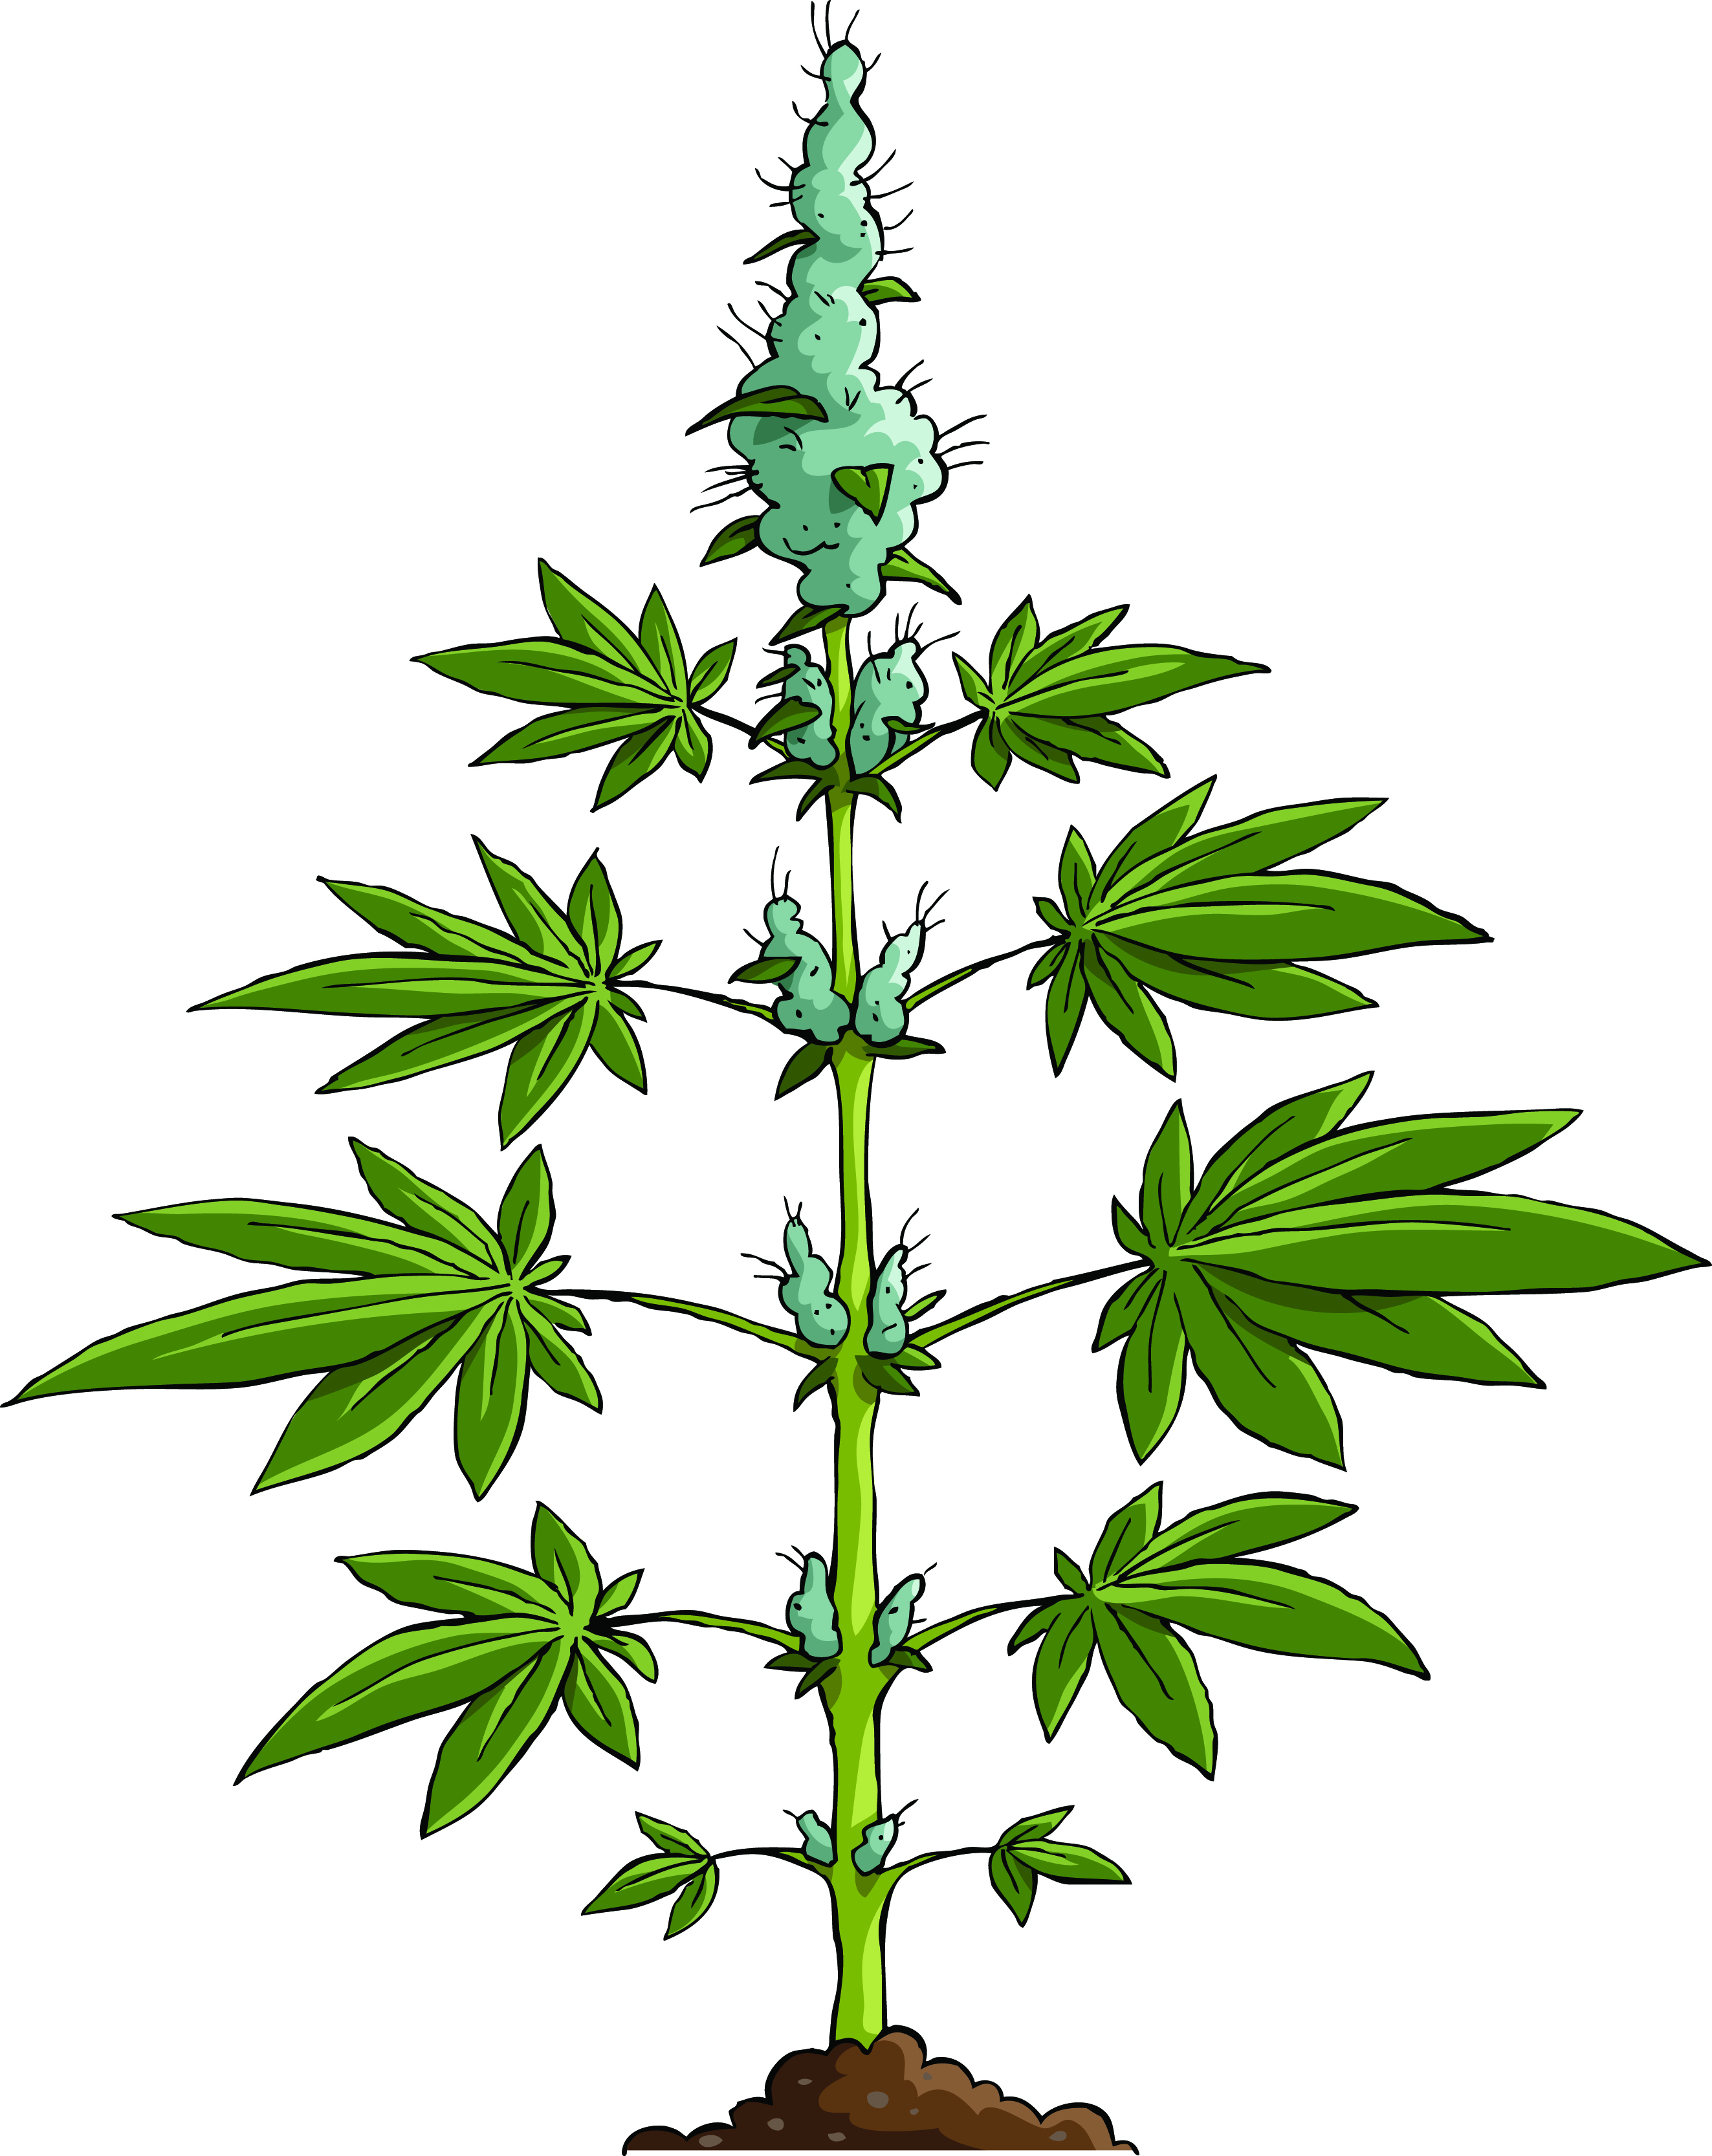 Free Weed Plant Drawing, Download Free Clip Art, Free Clip ... |Weed Plant Drawings